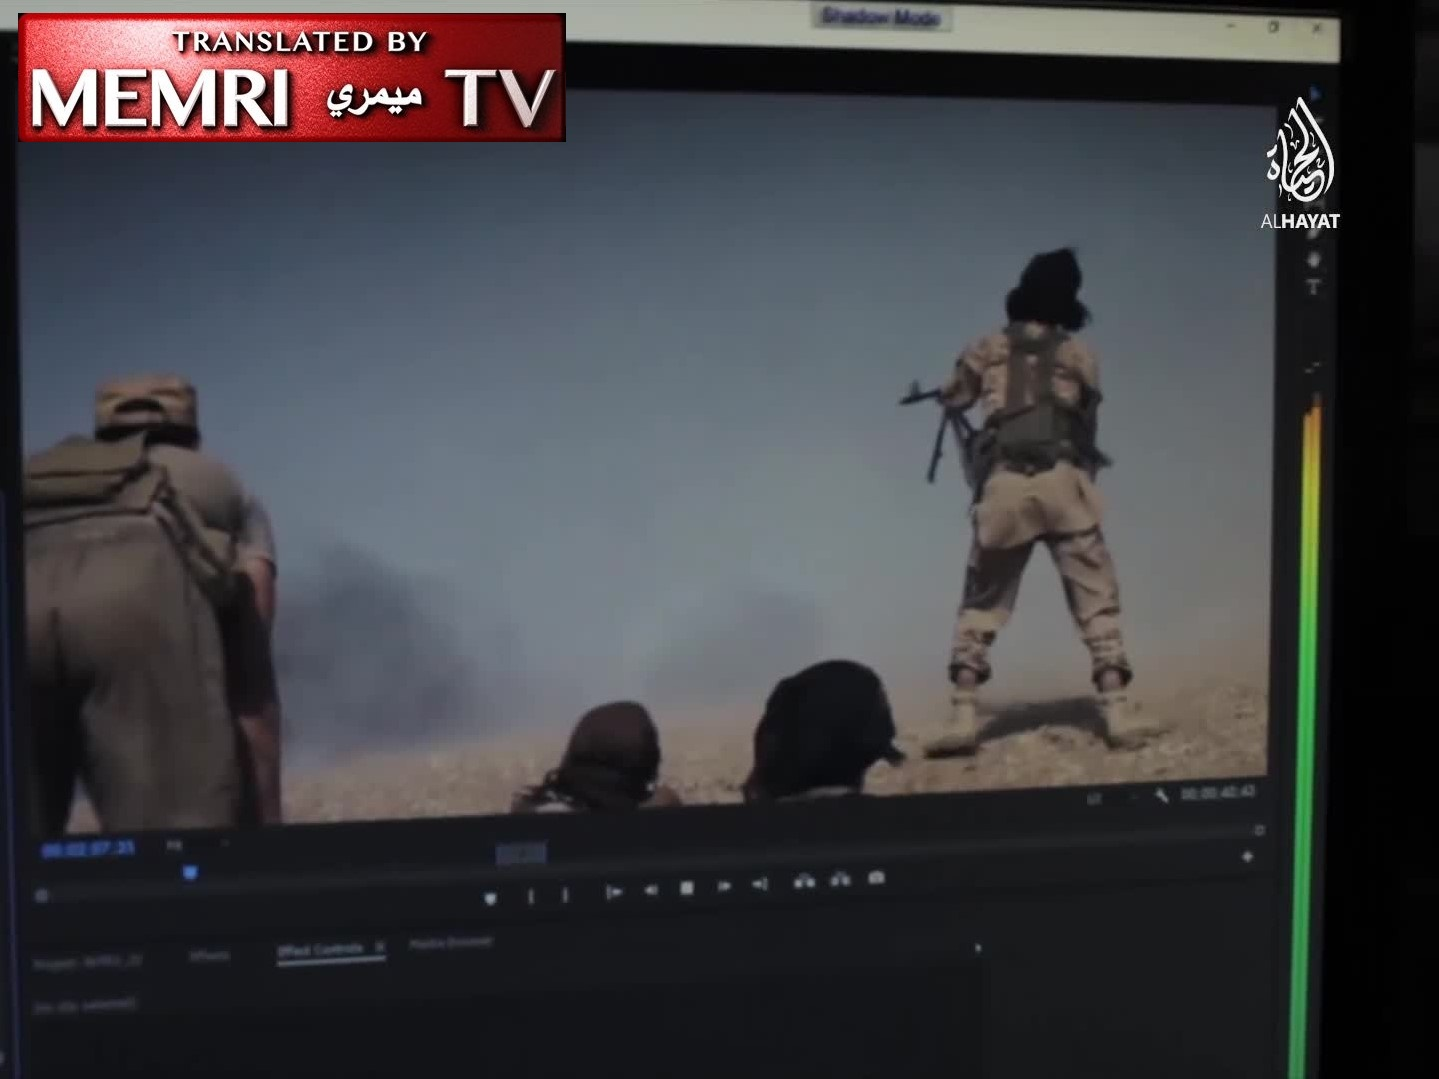 ISIS Al-Hayat Video Shows ISIS Operatives Using Encryption, Other Technology and Media for Recruitment, Communication, and Video Production